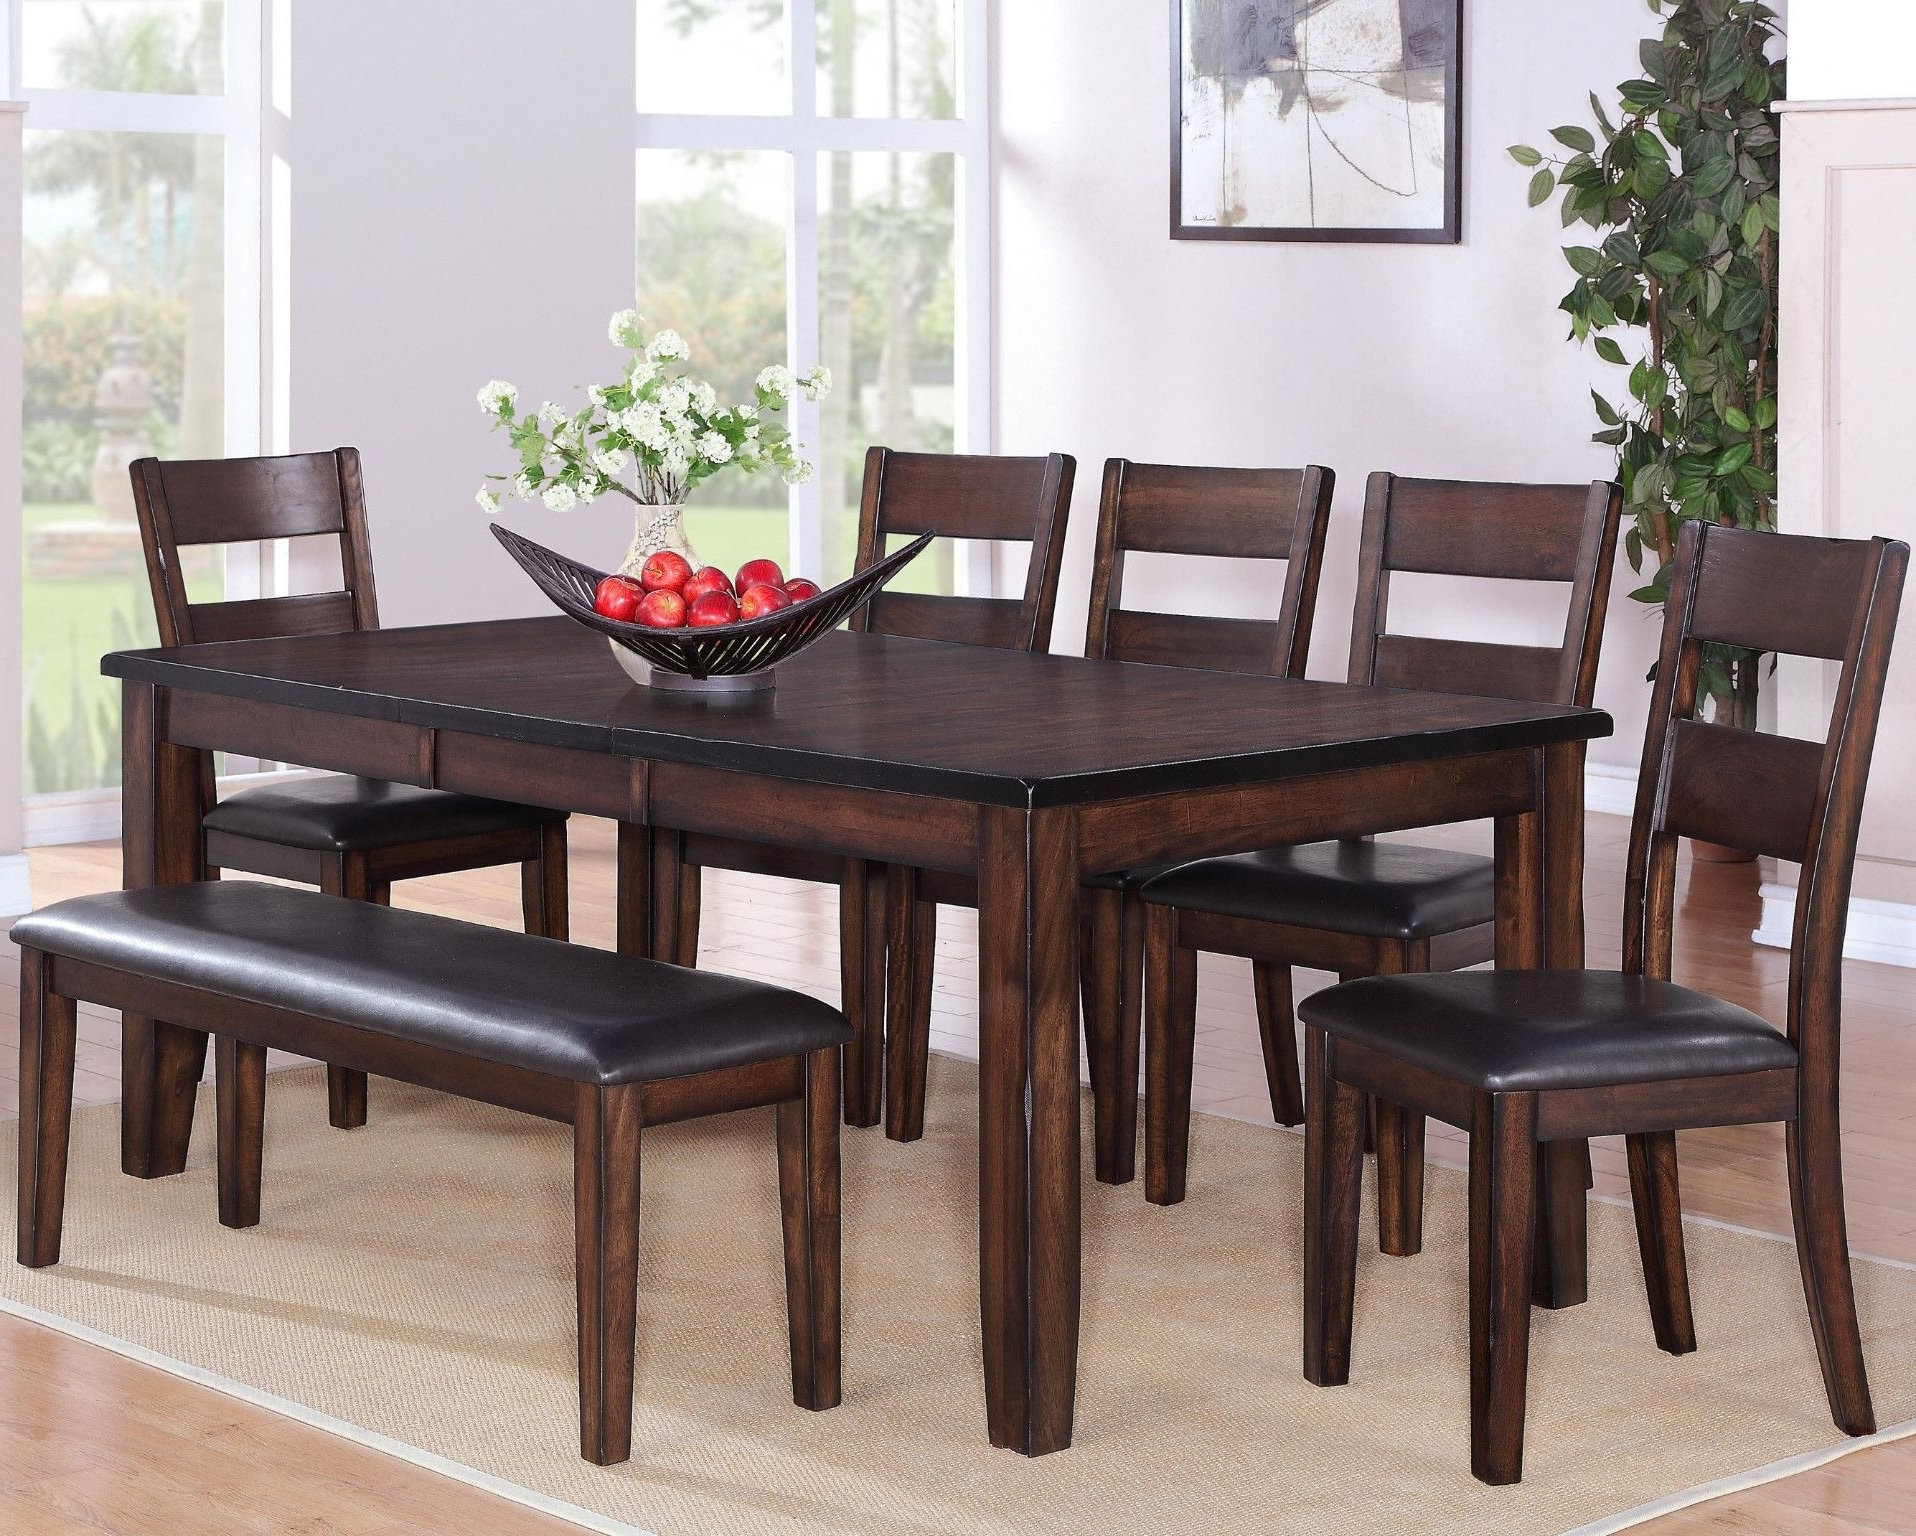 Maldives 5 Piece Dinette Table And 4 Chairs $699.00 Table $ (View 3 of 25)